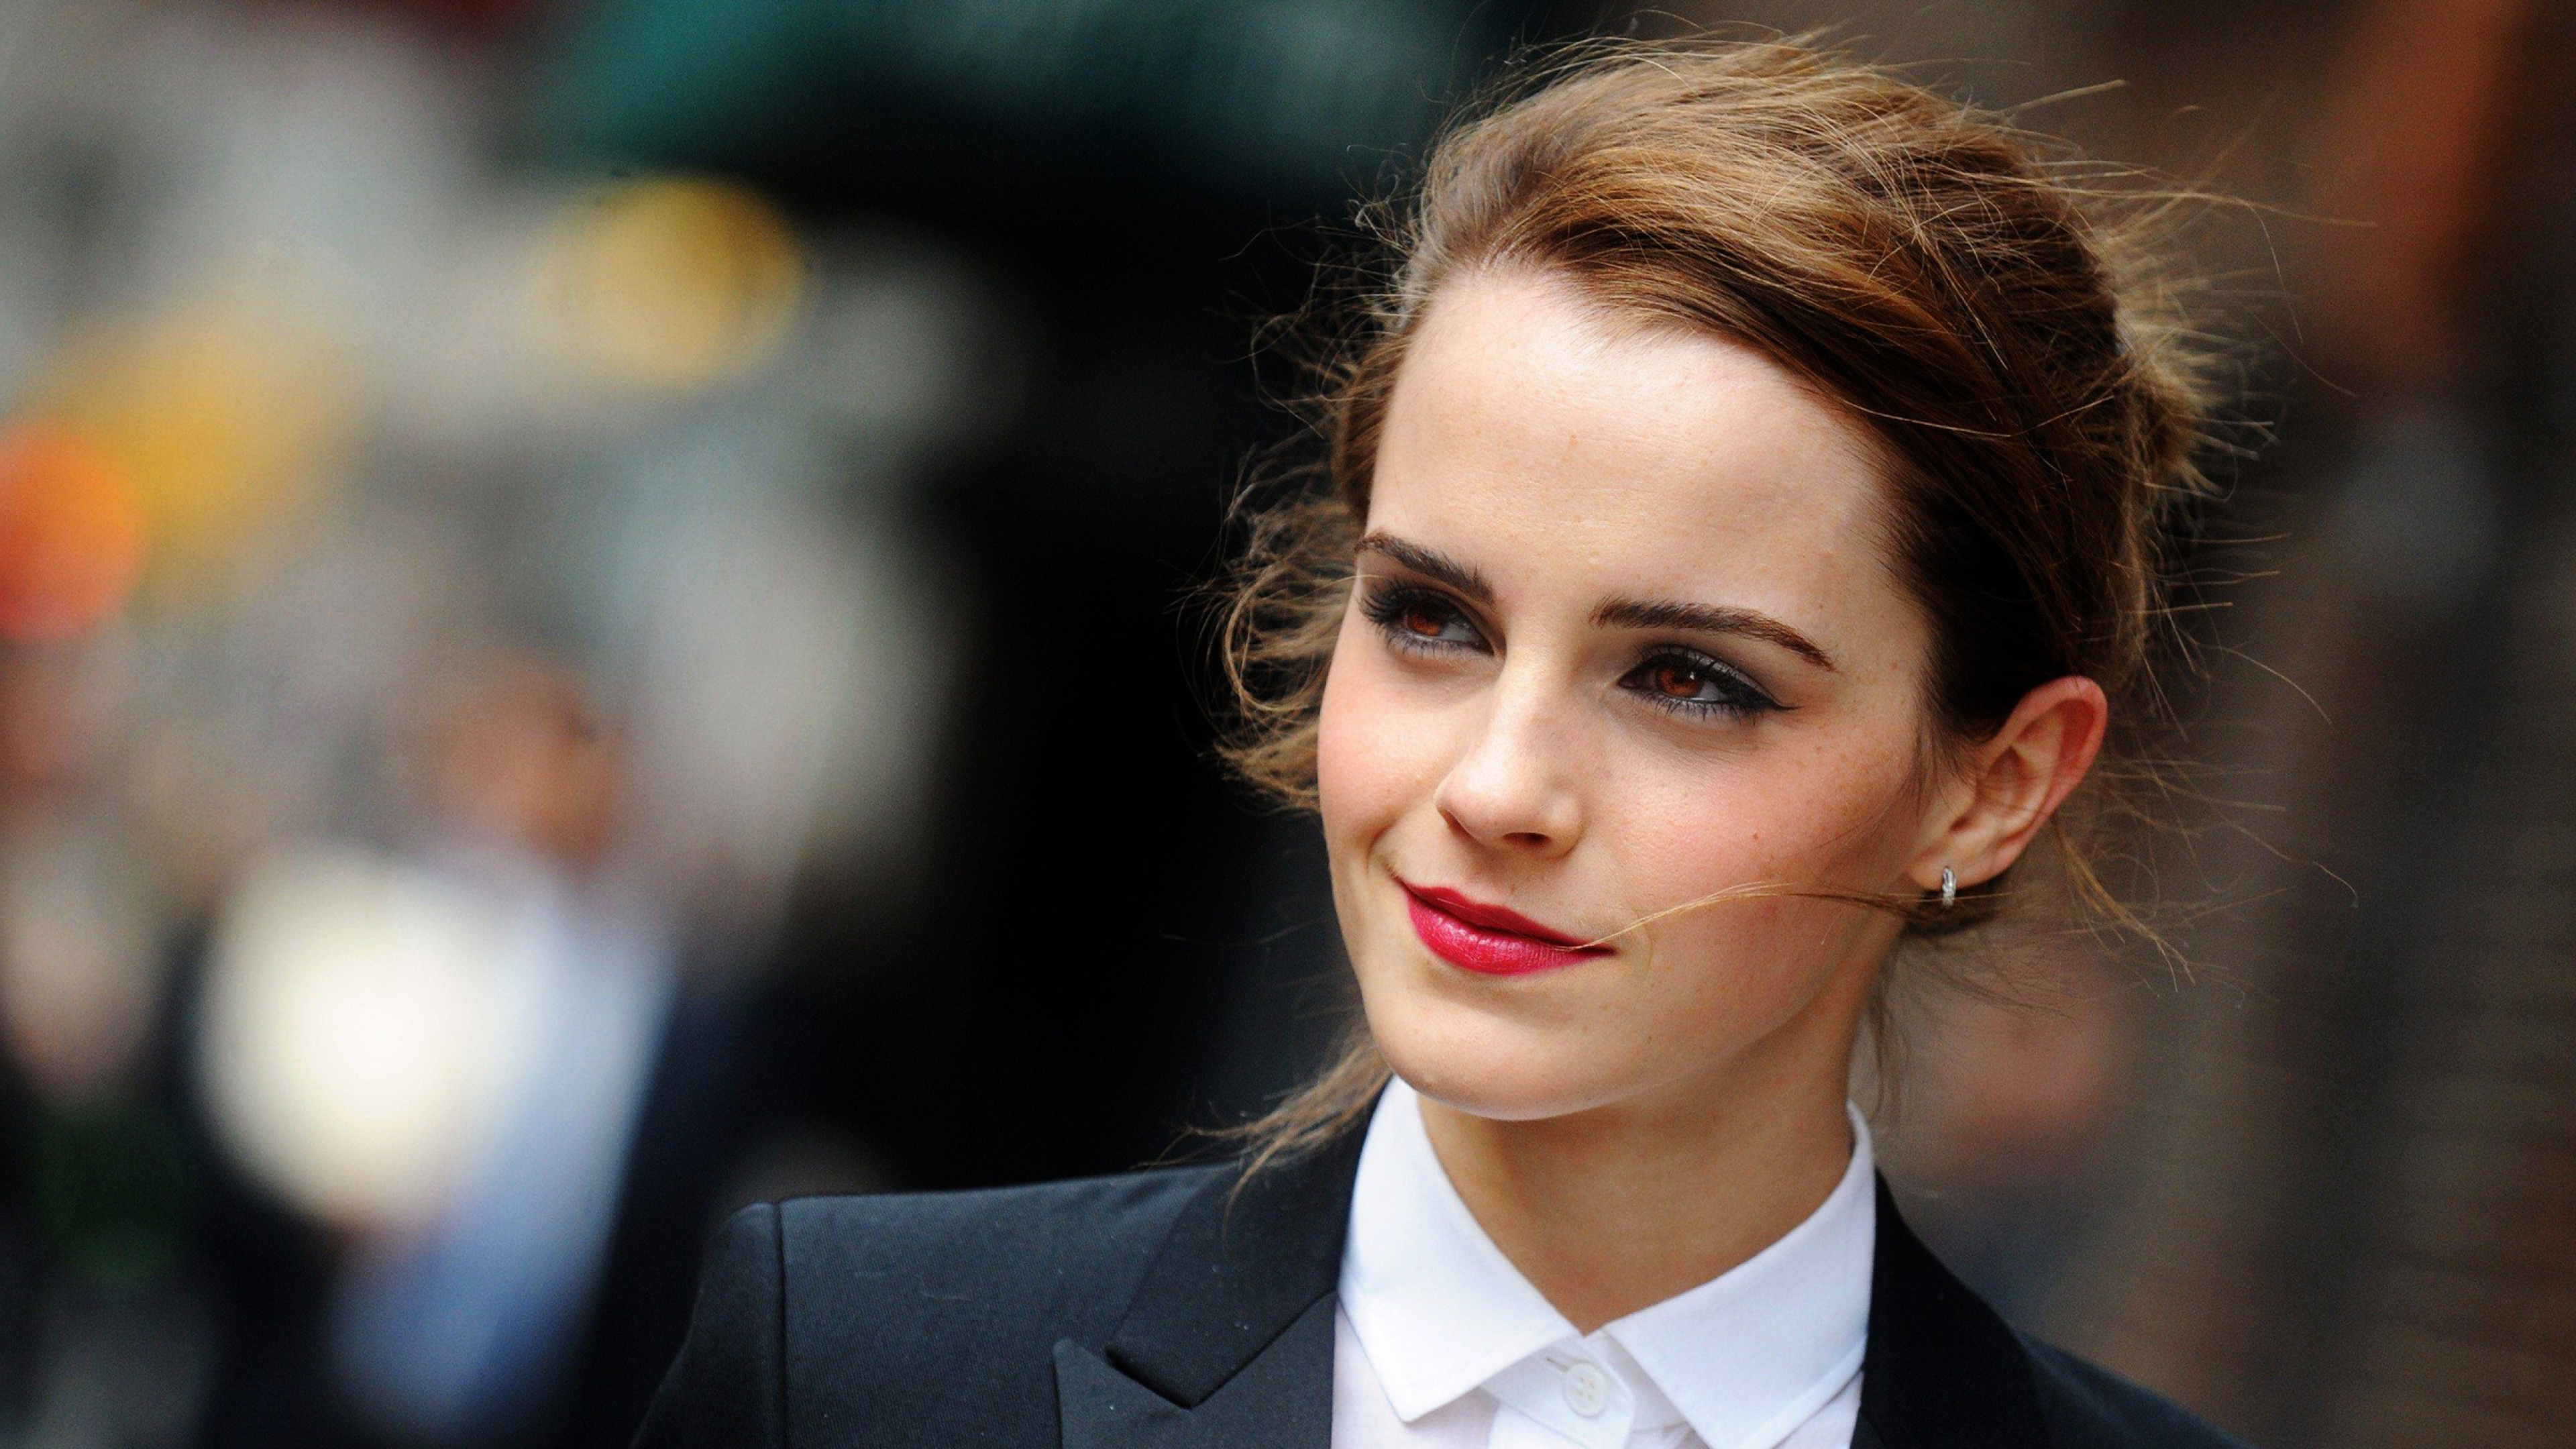 cute emma watson excellent beauty face look still download free